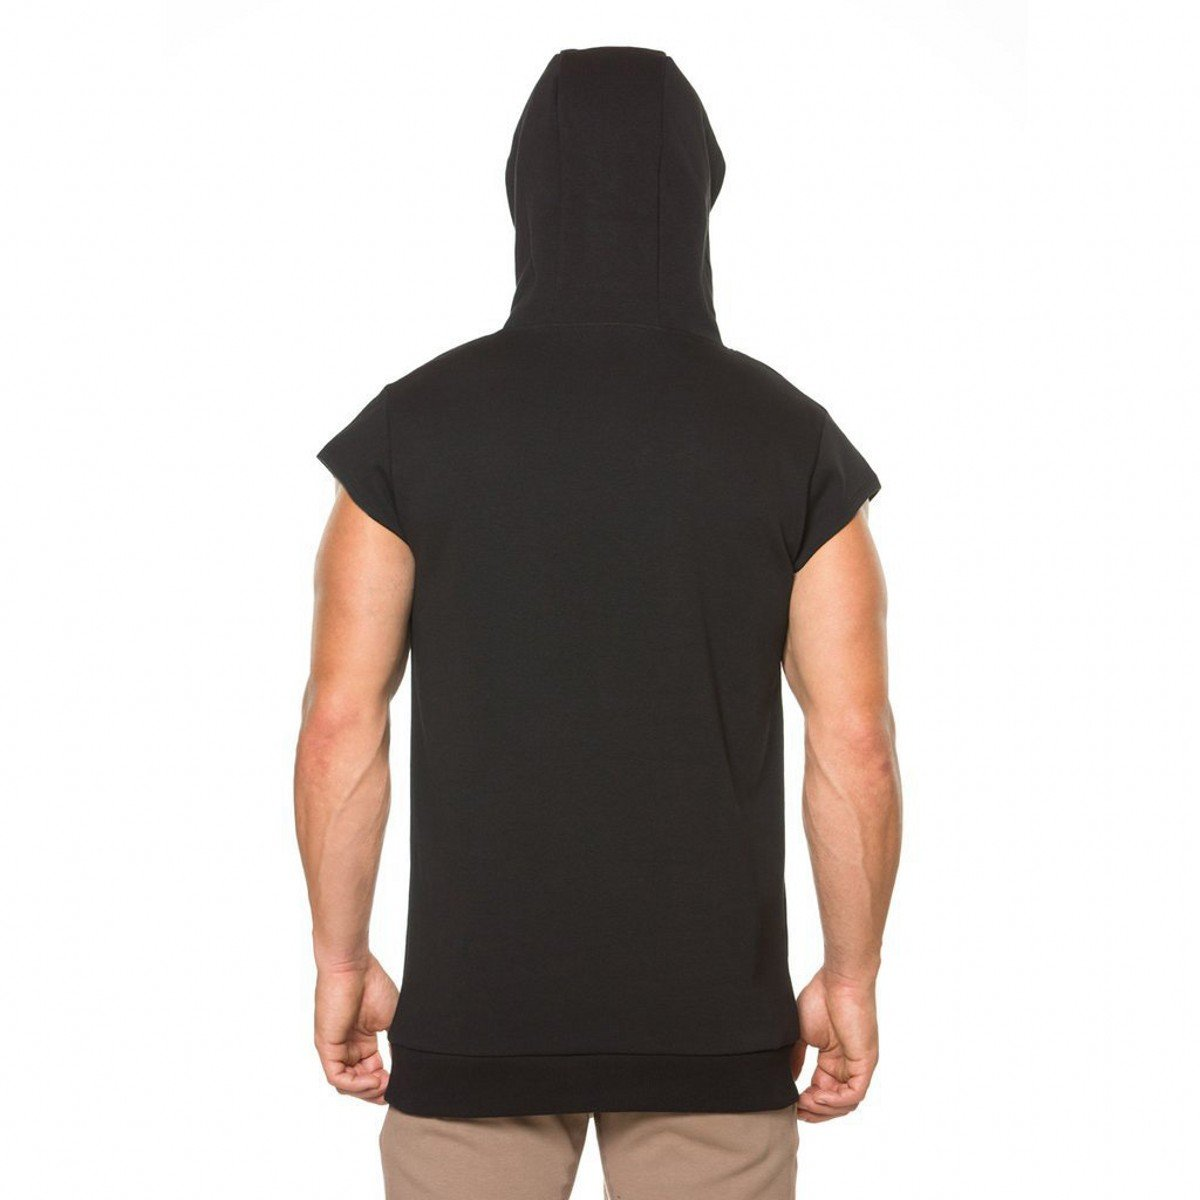 Coconut Ropamo CR Mens Hooded Sleeveless Vest Tank Hoodies Workout Fitted Muscle Slim Fit Hoody Pockets with Zipper